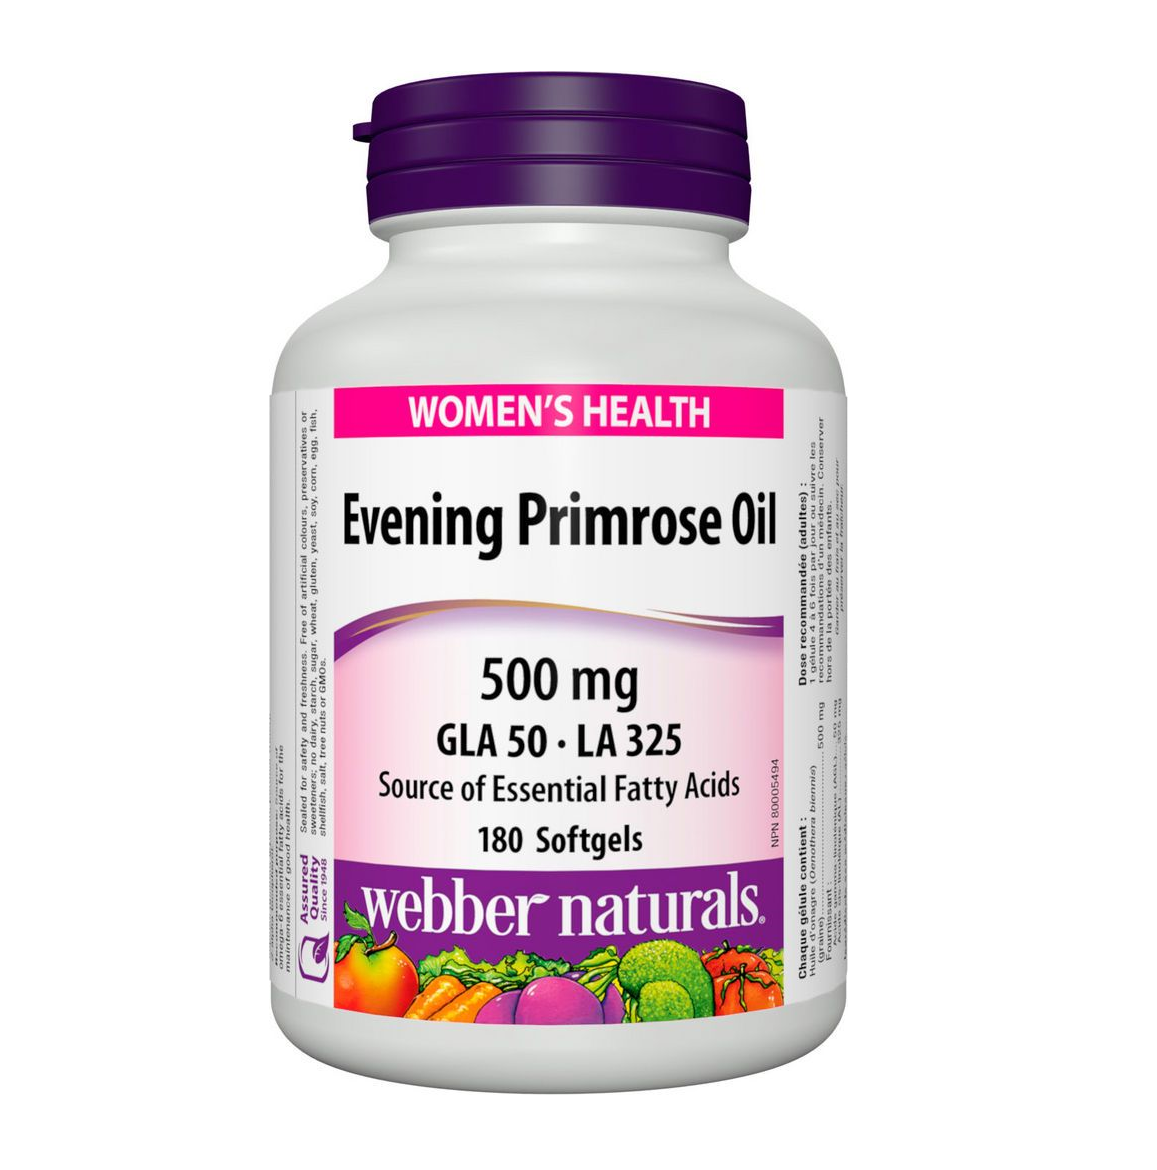 Webber Naturals Evening Primrose Oil 180 Softgels